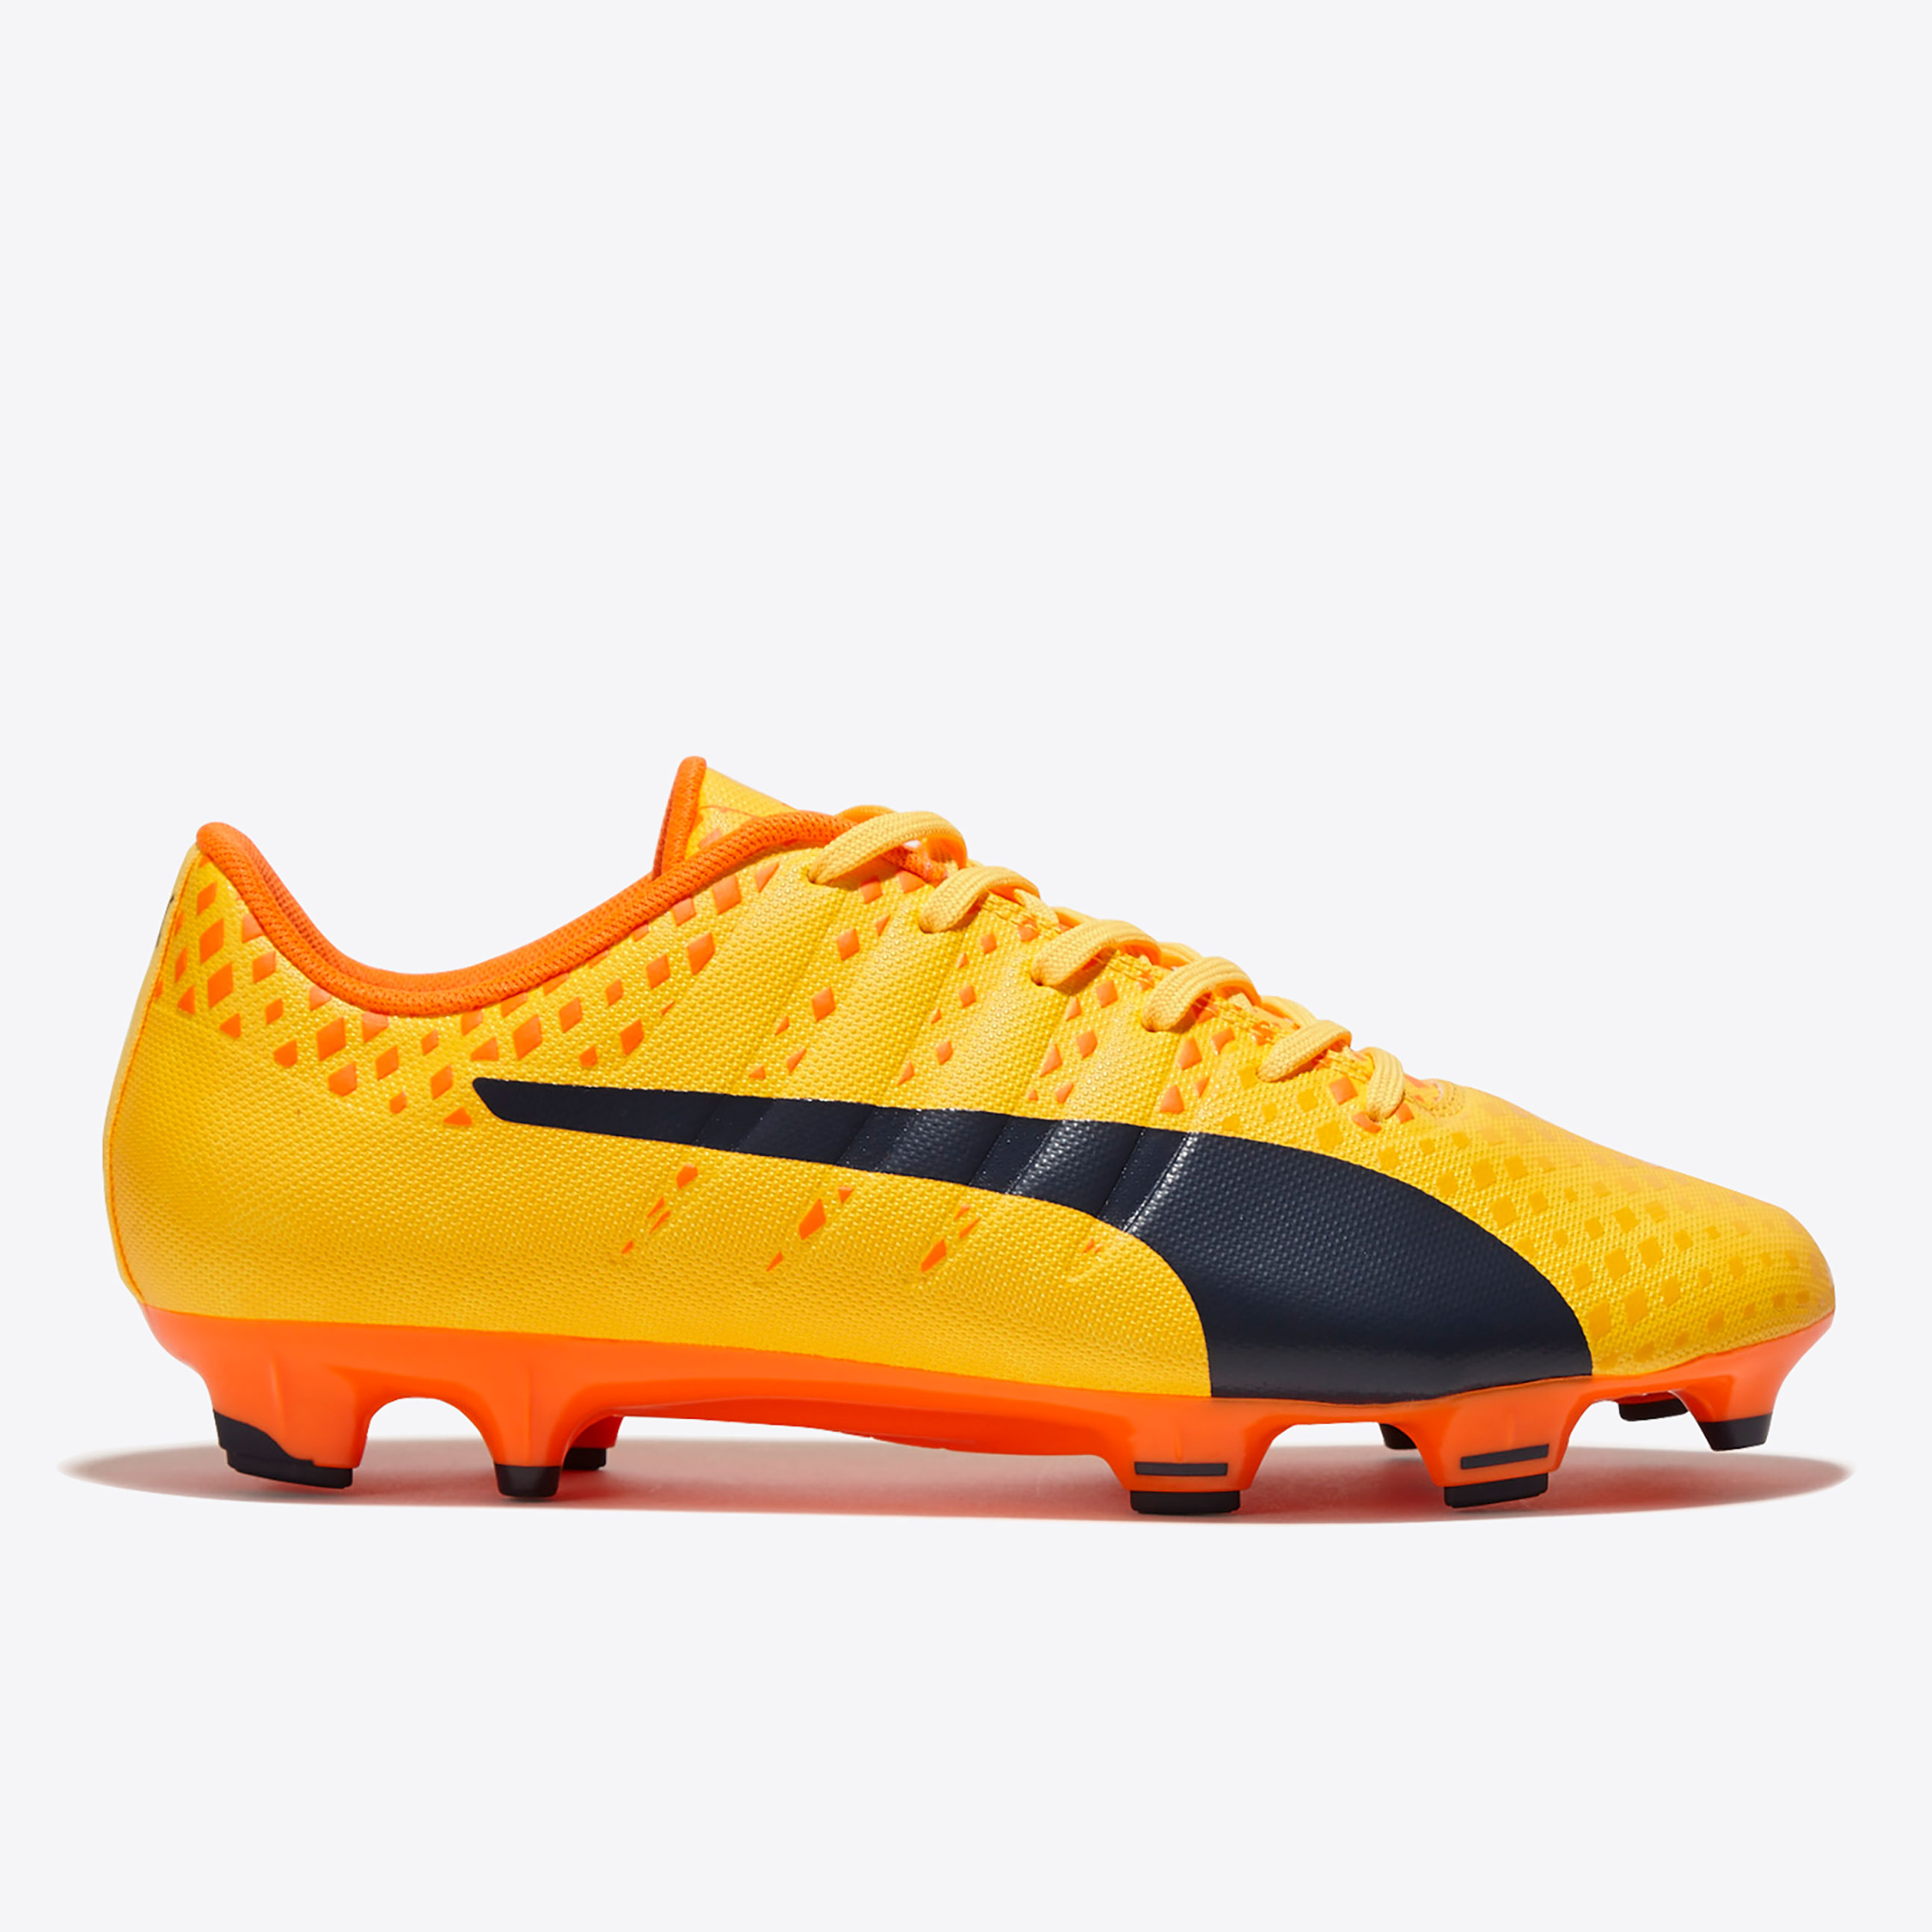 Puma evoPOWER Vigor 3 FG Ultra Yellow/Peacoa